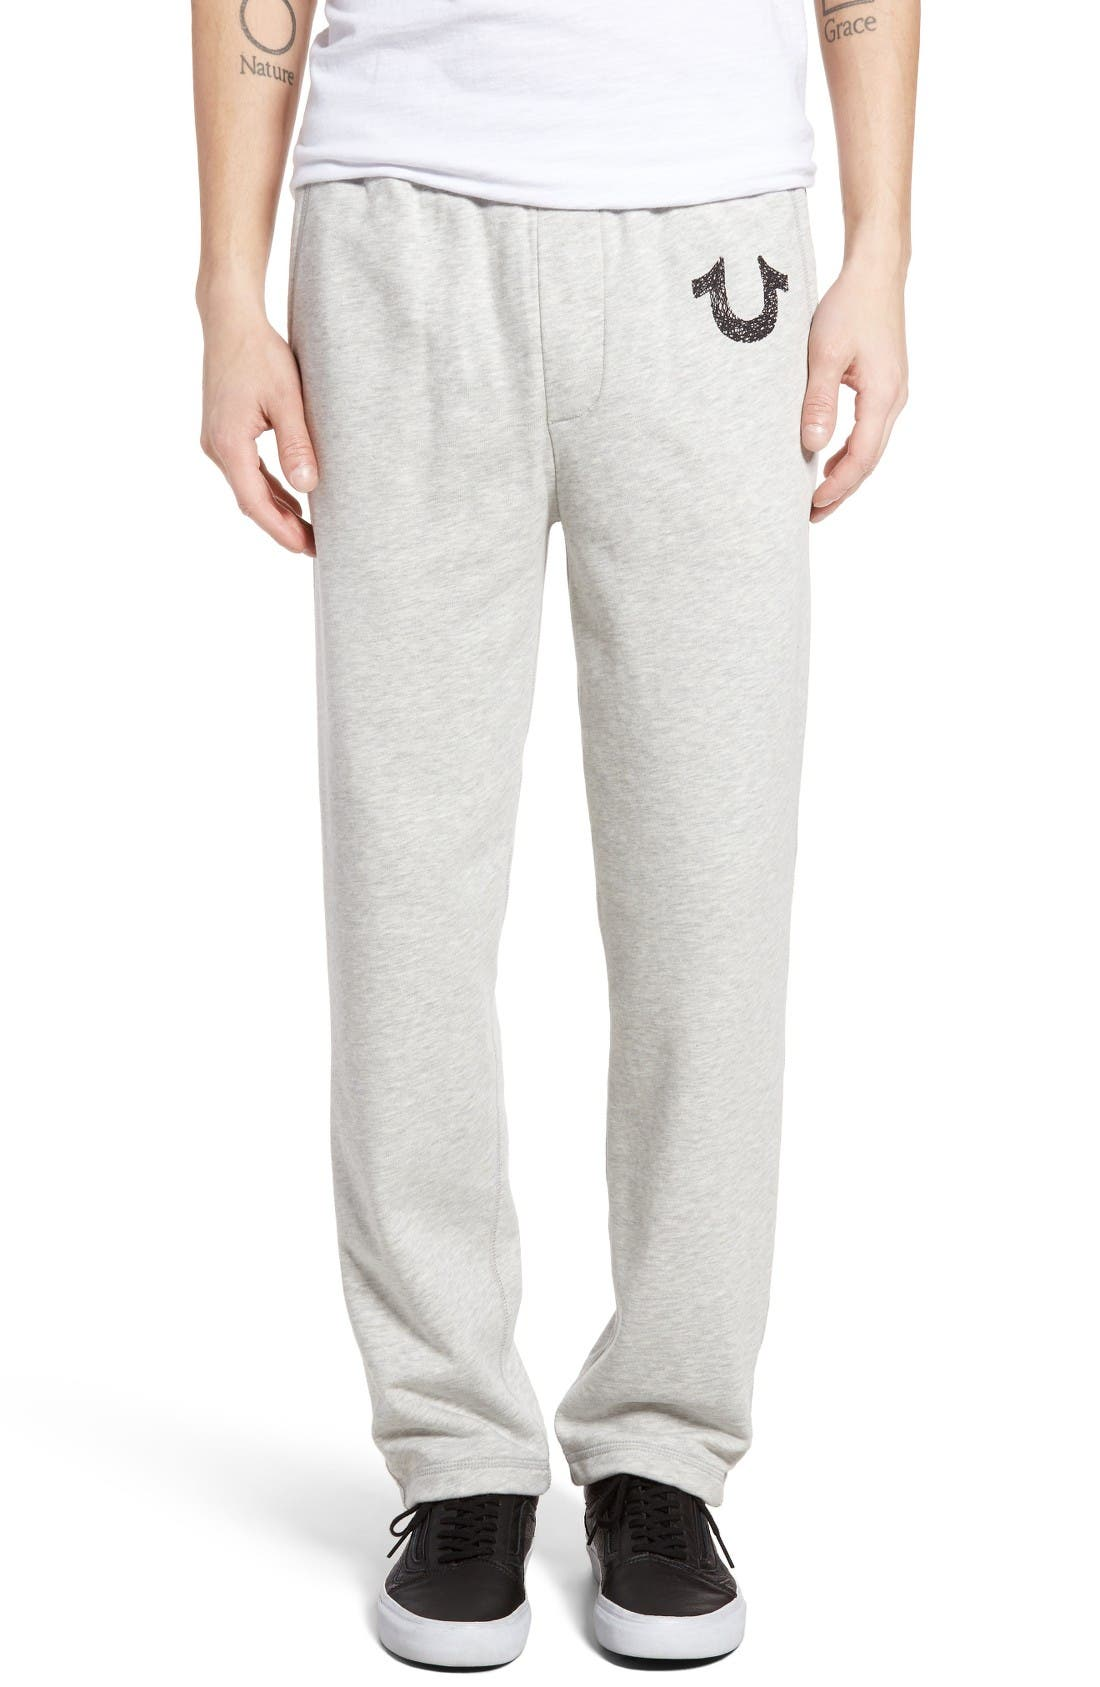 Open Leg Sweatpants,                         Main,                         color, Heather Grey